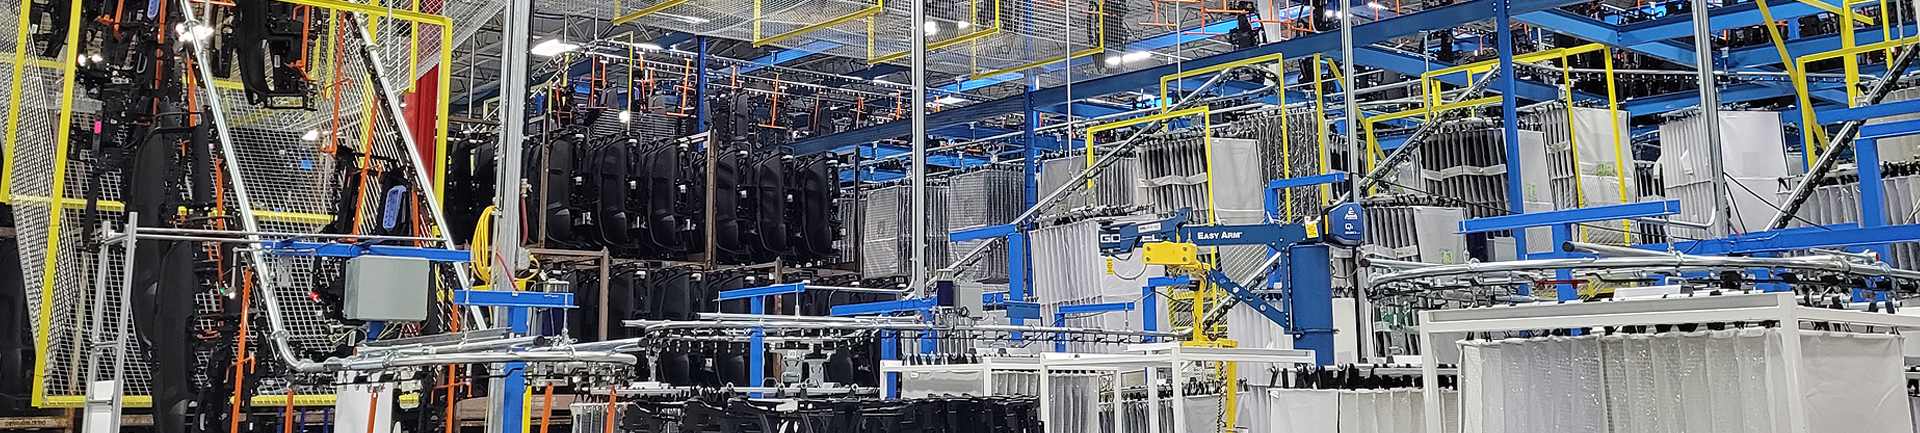 conveyors for automotive manufacturing facilities